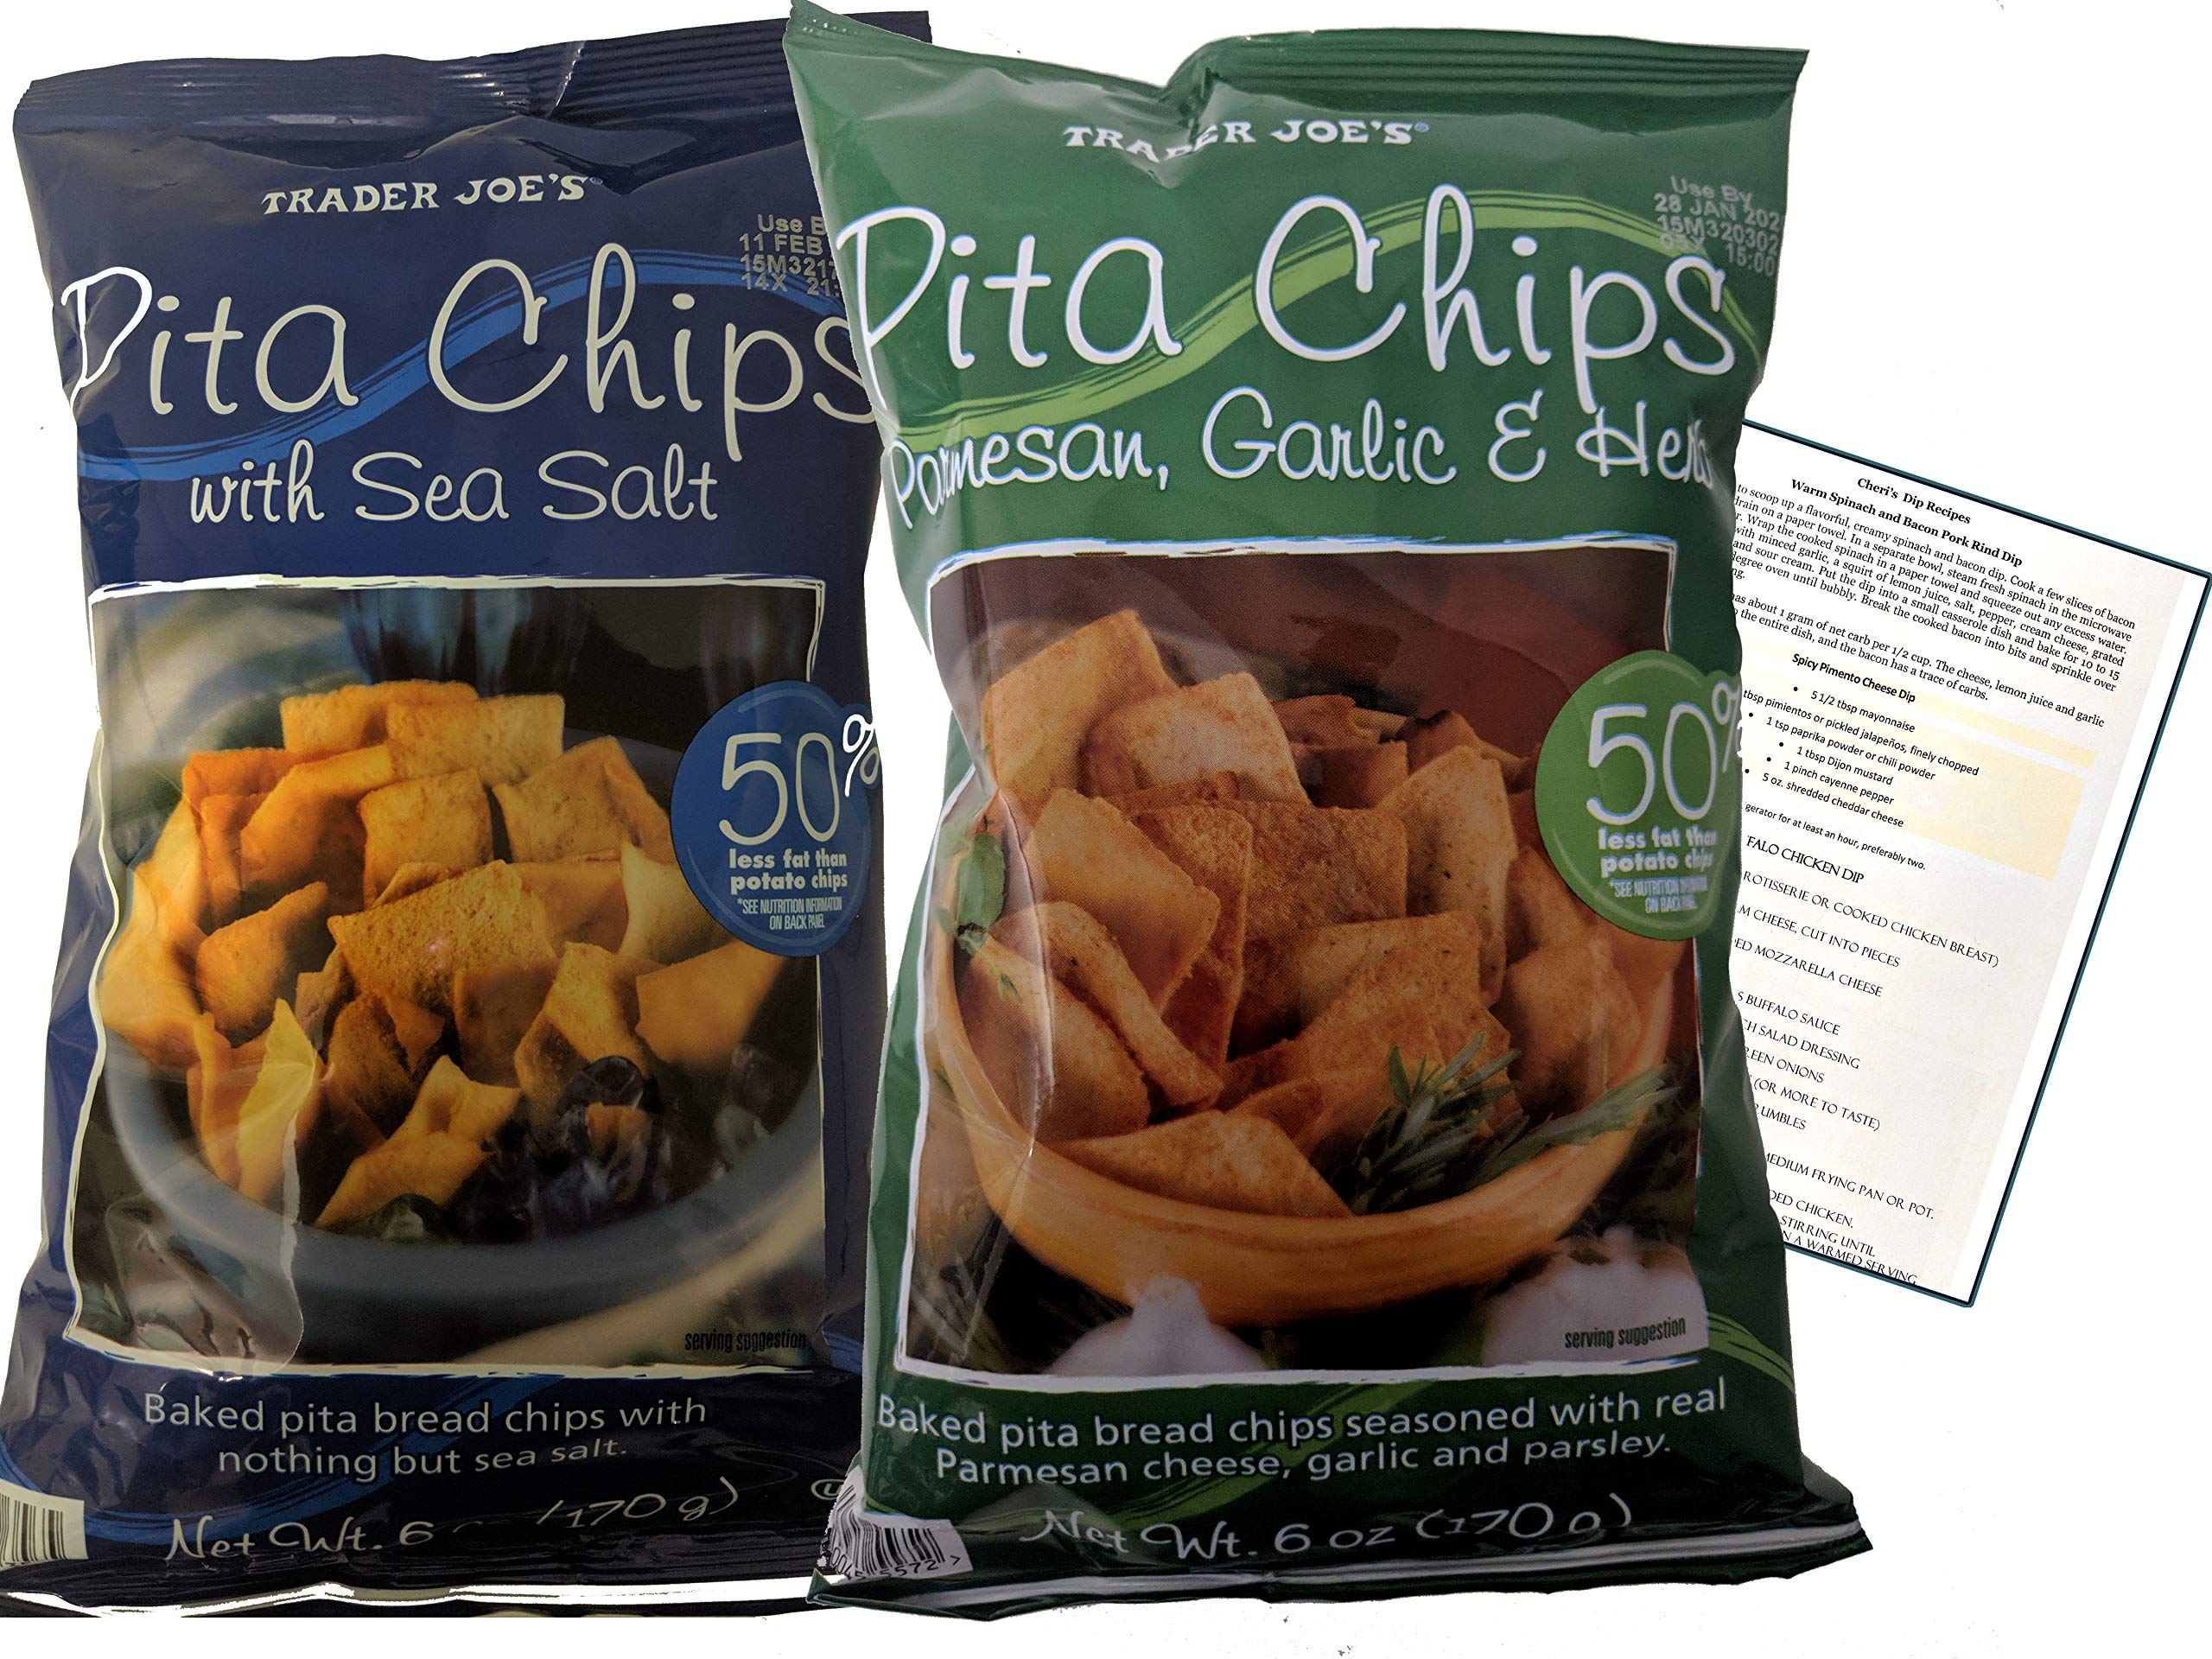 Baked Pita Chips Variety Pack of 2 Parmesan, Garlic & Herb and Pita Chip with Sea Salt. Healthy Chips with Cheri's Keto Dip Recipes by Snack Fun